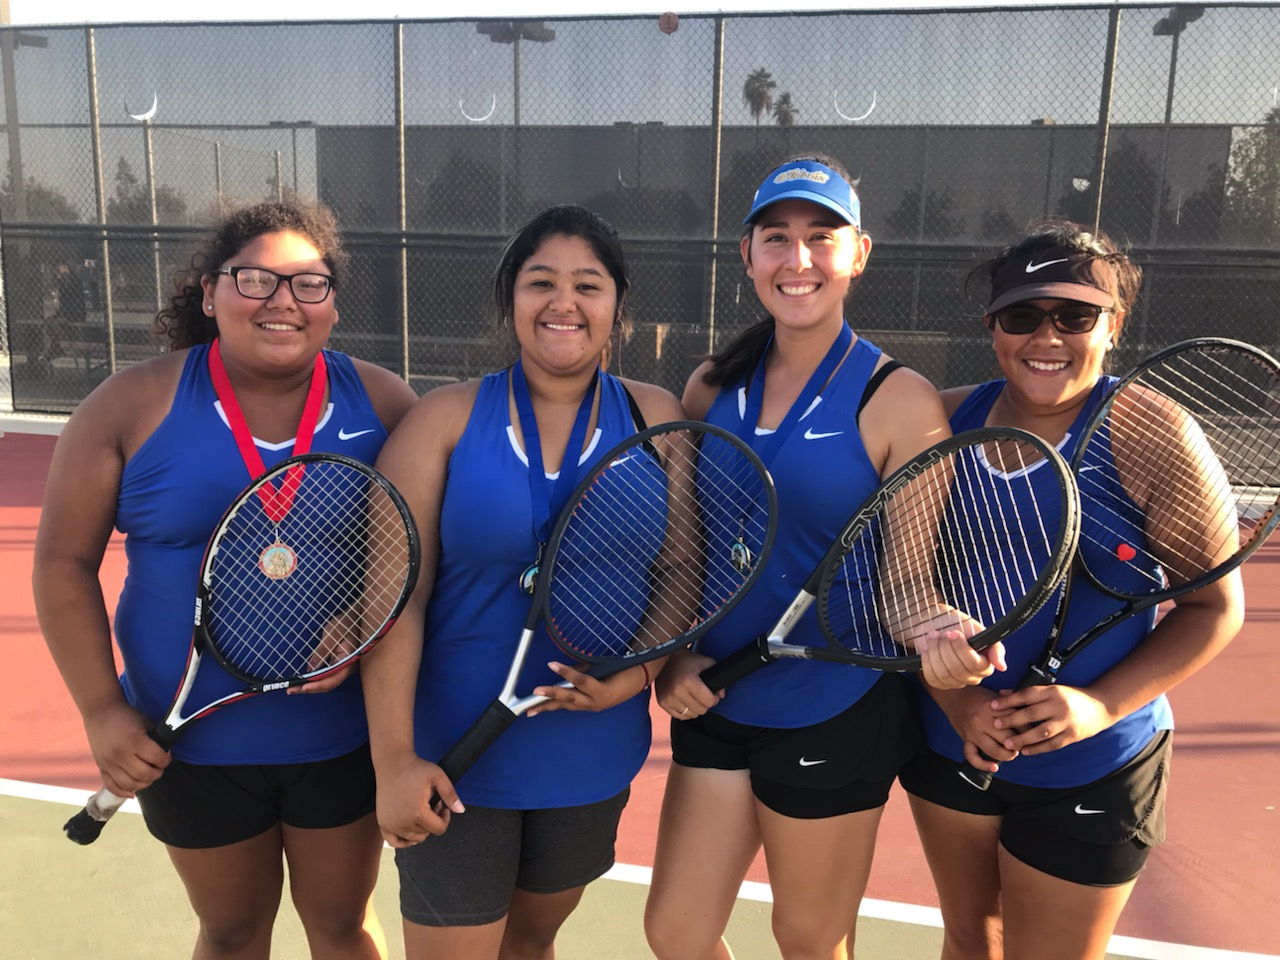 Taft for the win. Valerie Munoz, Cielo Woggn, Diana Huizar, and Jessica DeLaCruz are all excited about their win. This was the second time that the Taft High varsity team won the SSL Championship in the league's 54 history.